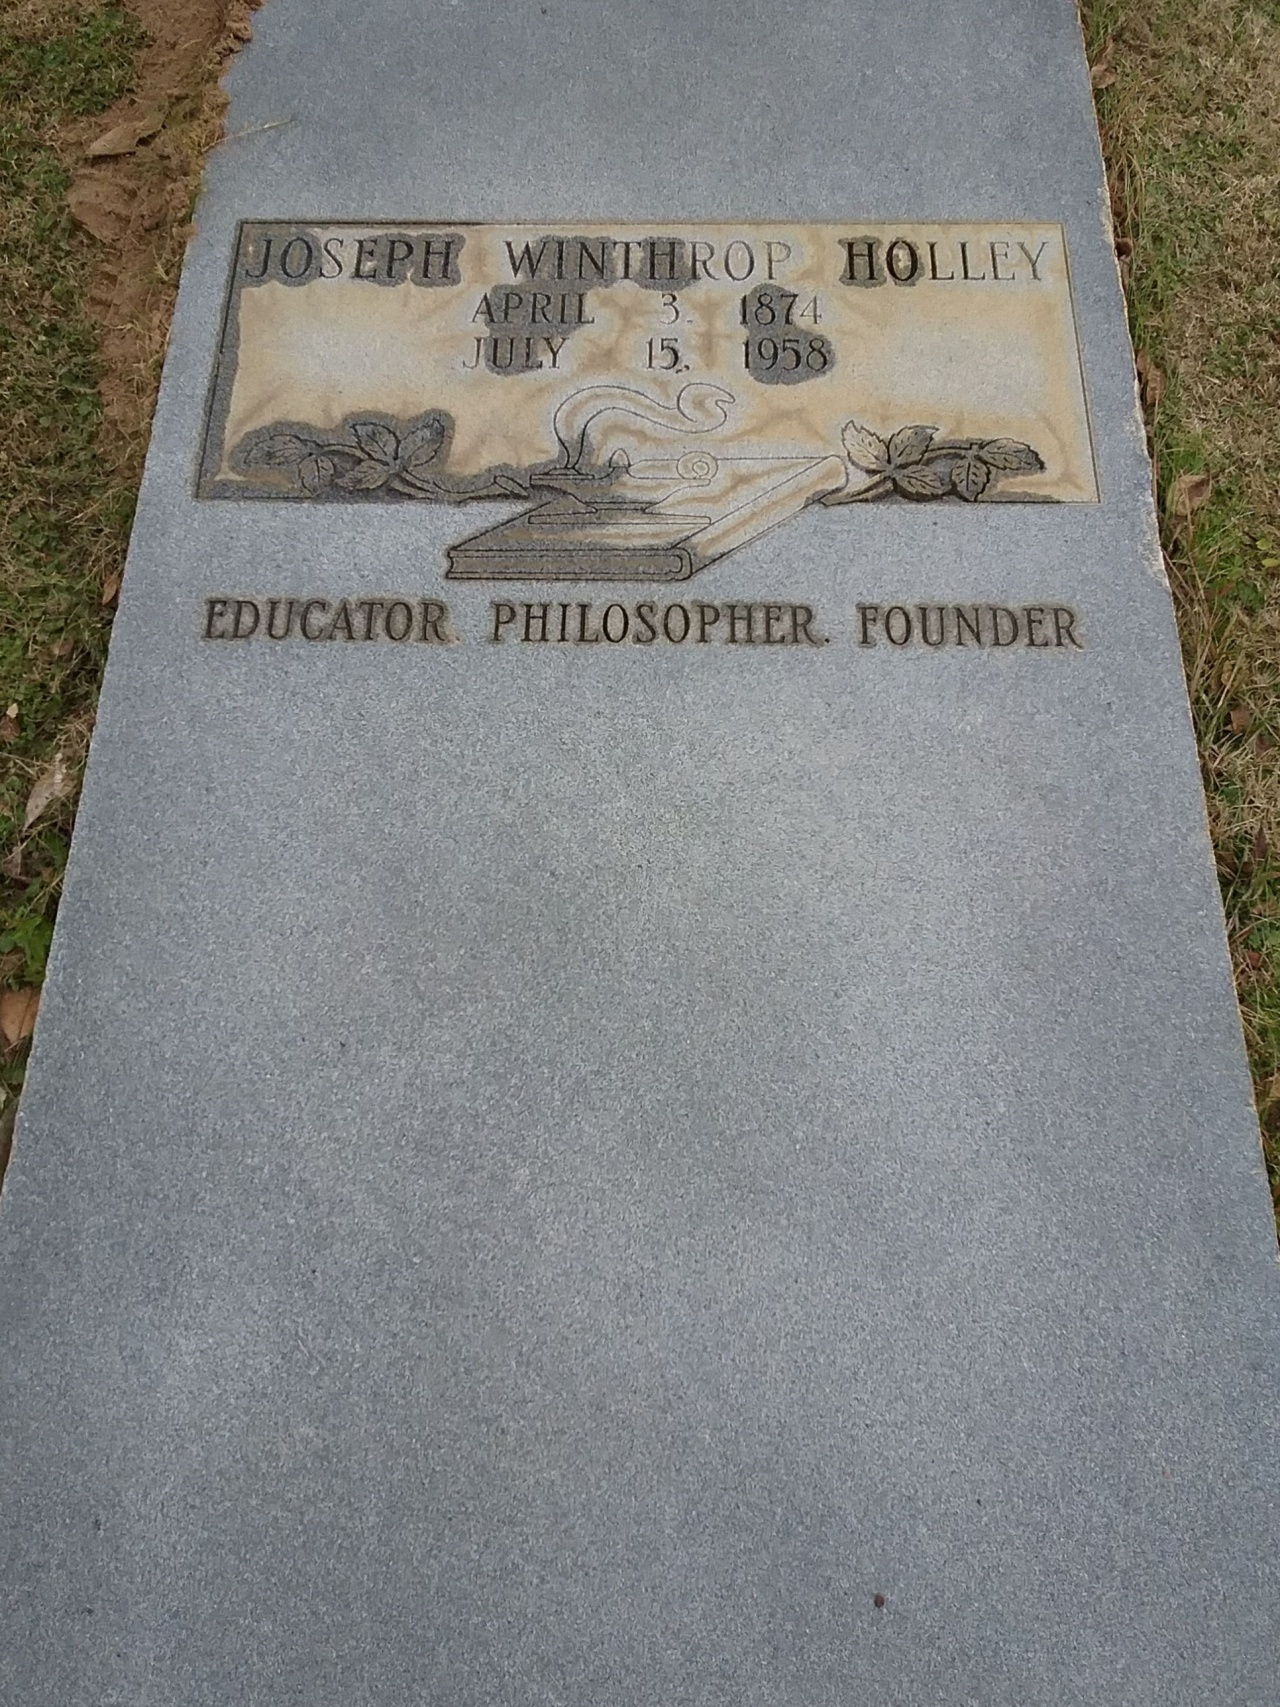 Joseph Winthrop Holley is buried at Albany State University Cemetery, Albany, Georgia.